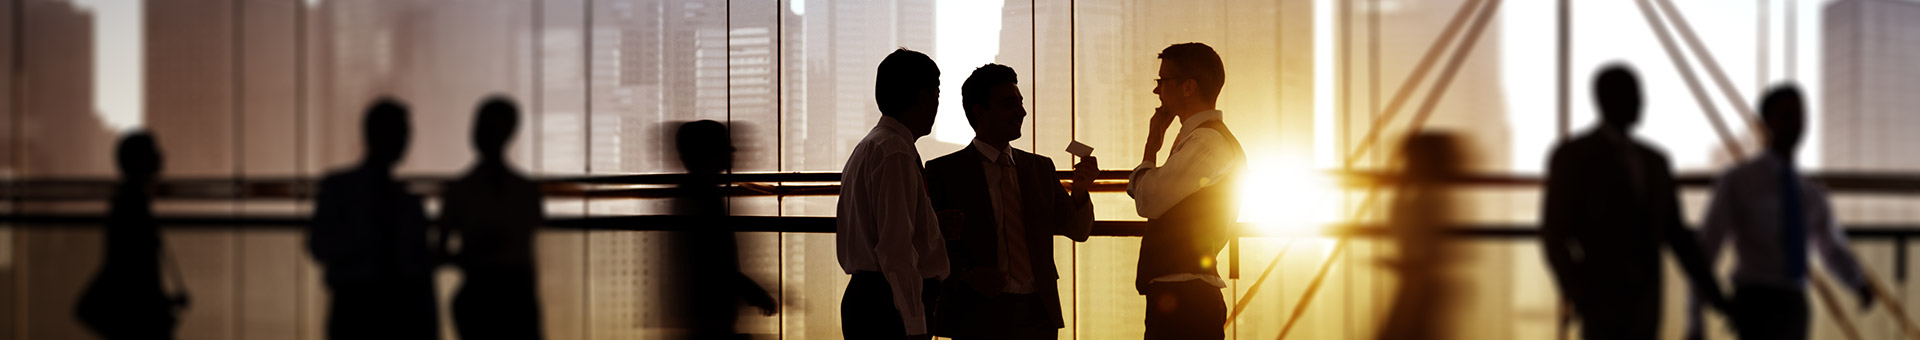 Silhouette of businessmen in conversation